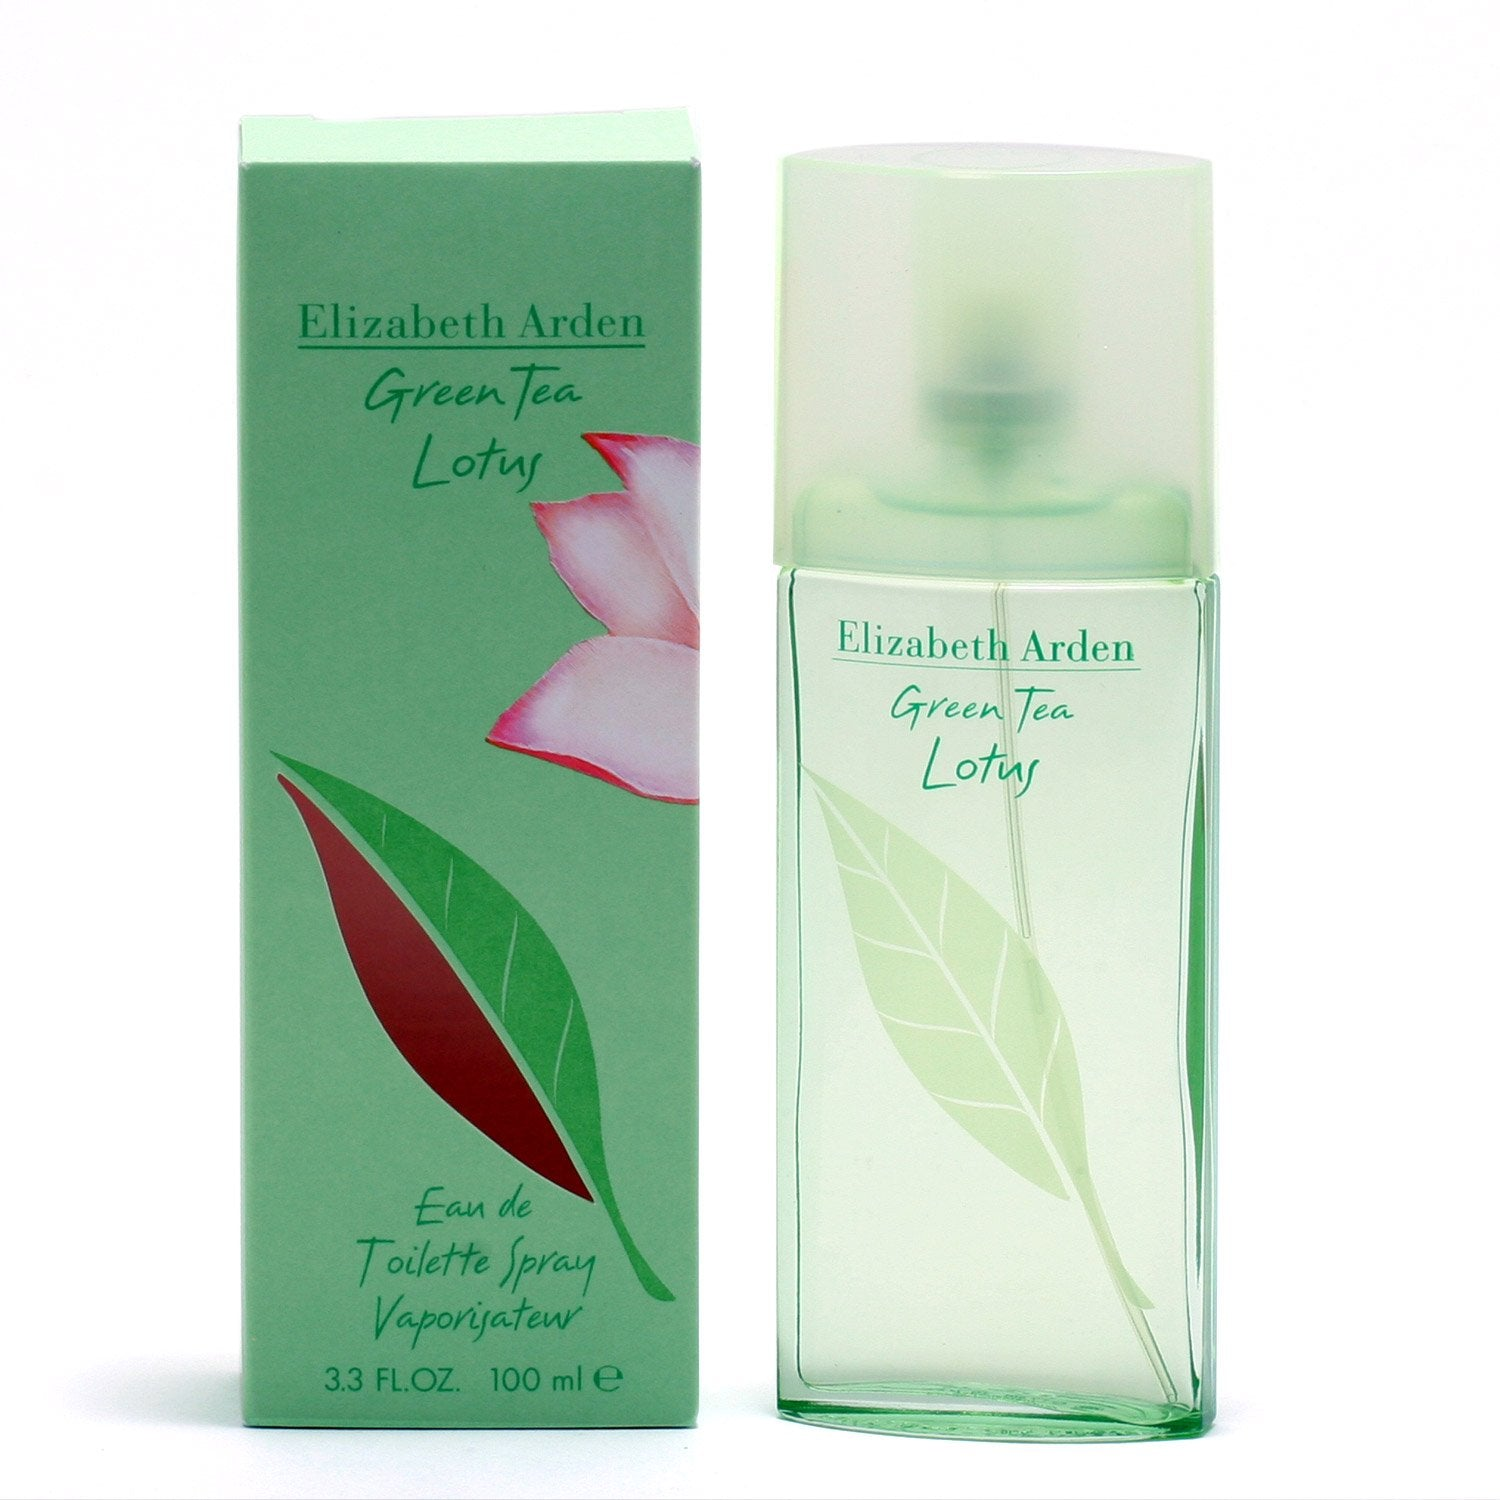 Perfume - GREEN TEA LOTUS FOR WOMEN BY ELIZABETH ARDEN - EAU DE TOILETTE SPRAY, 3.3 OZ